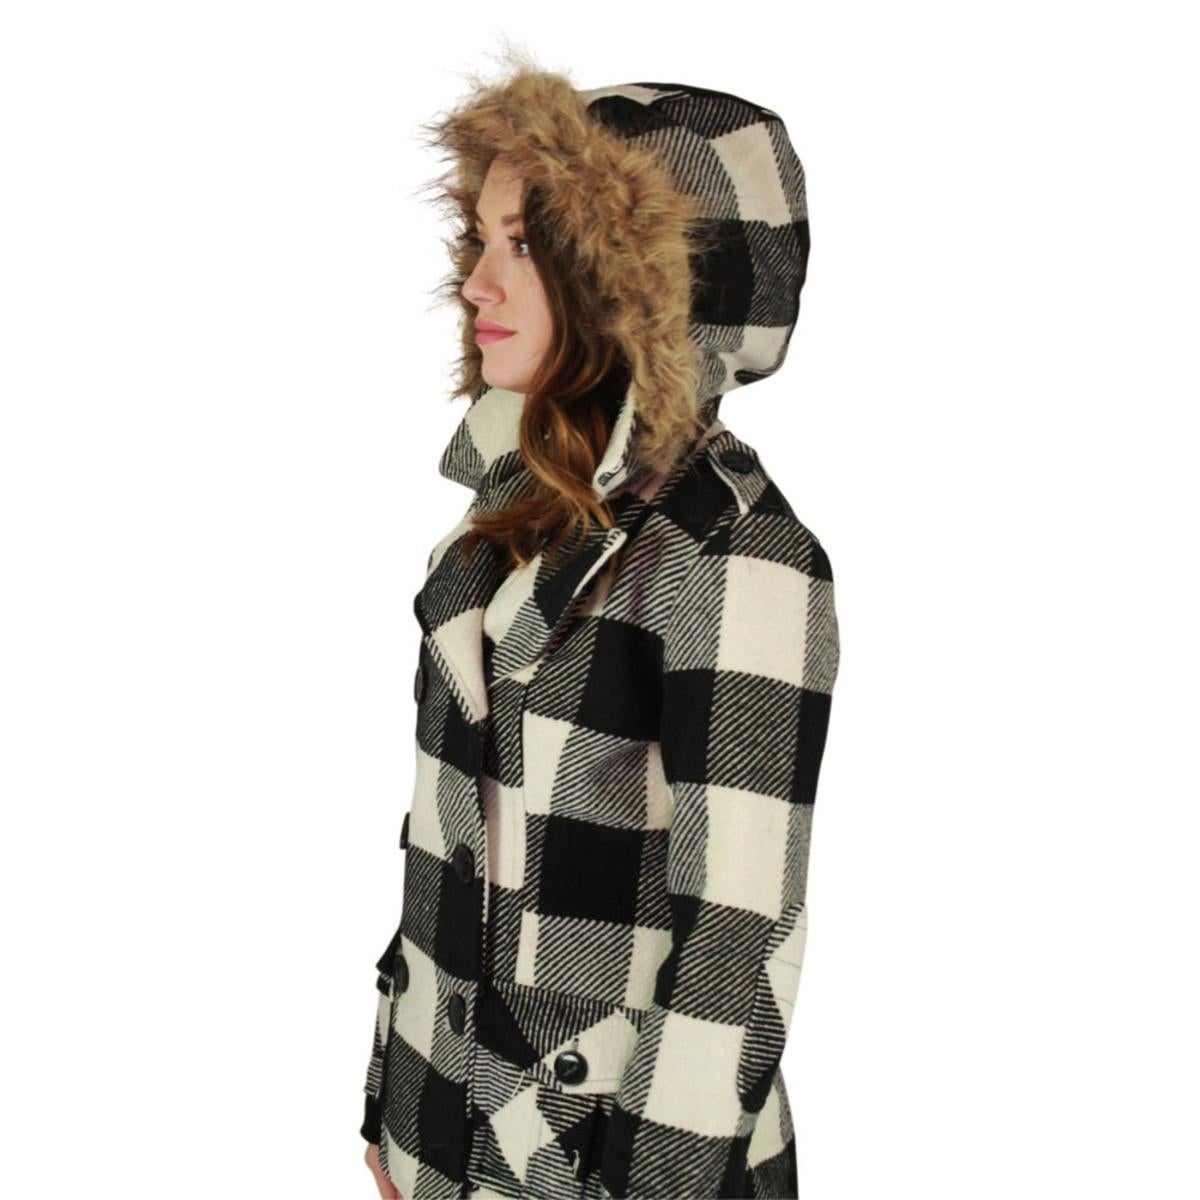 0f9d7ee6522f6 Shop Urban Republic Womens Juniors Pea Coat Double Breasted Winter - Free  Shipping On Orders Over $45 - Overstock - 24152148